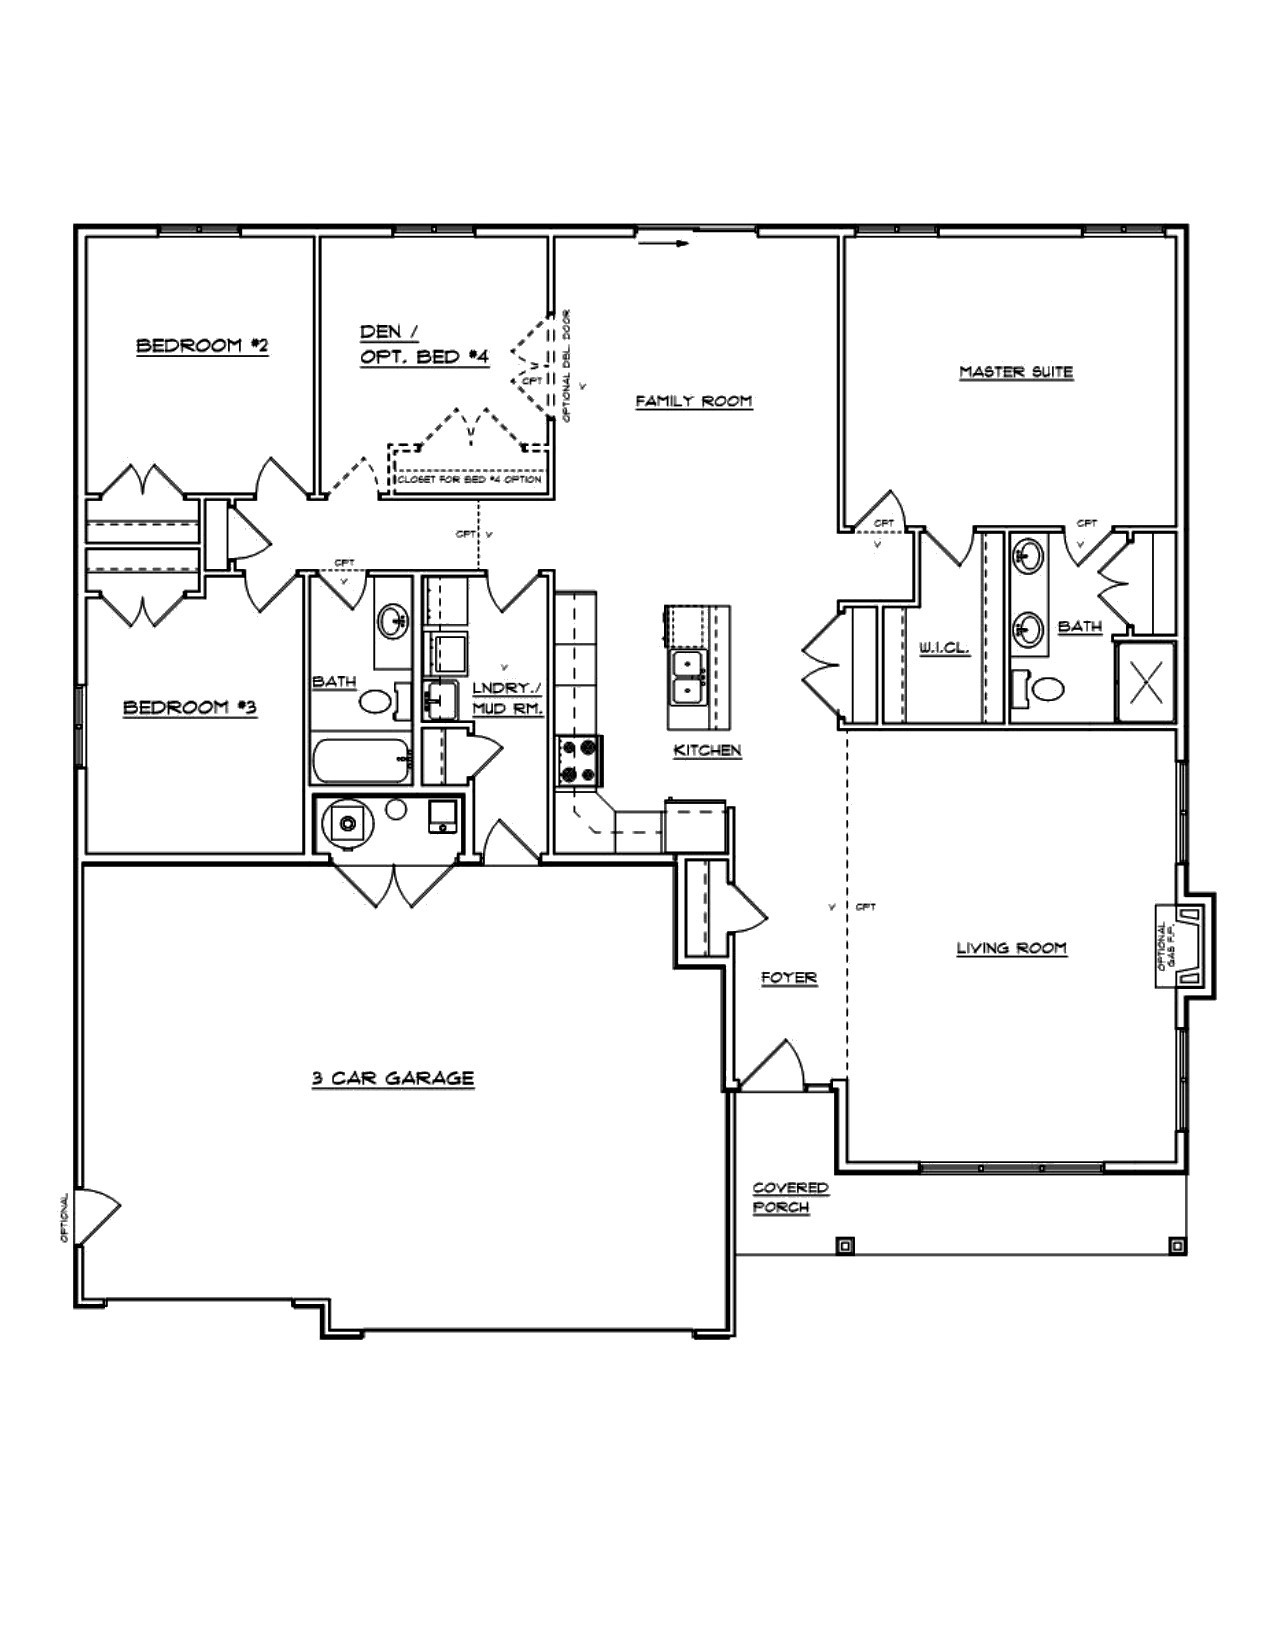 Plan 2018 aho northwest for Aho construction floor plans